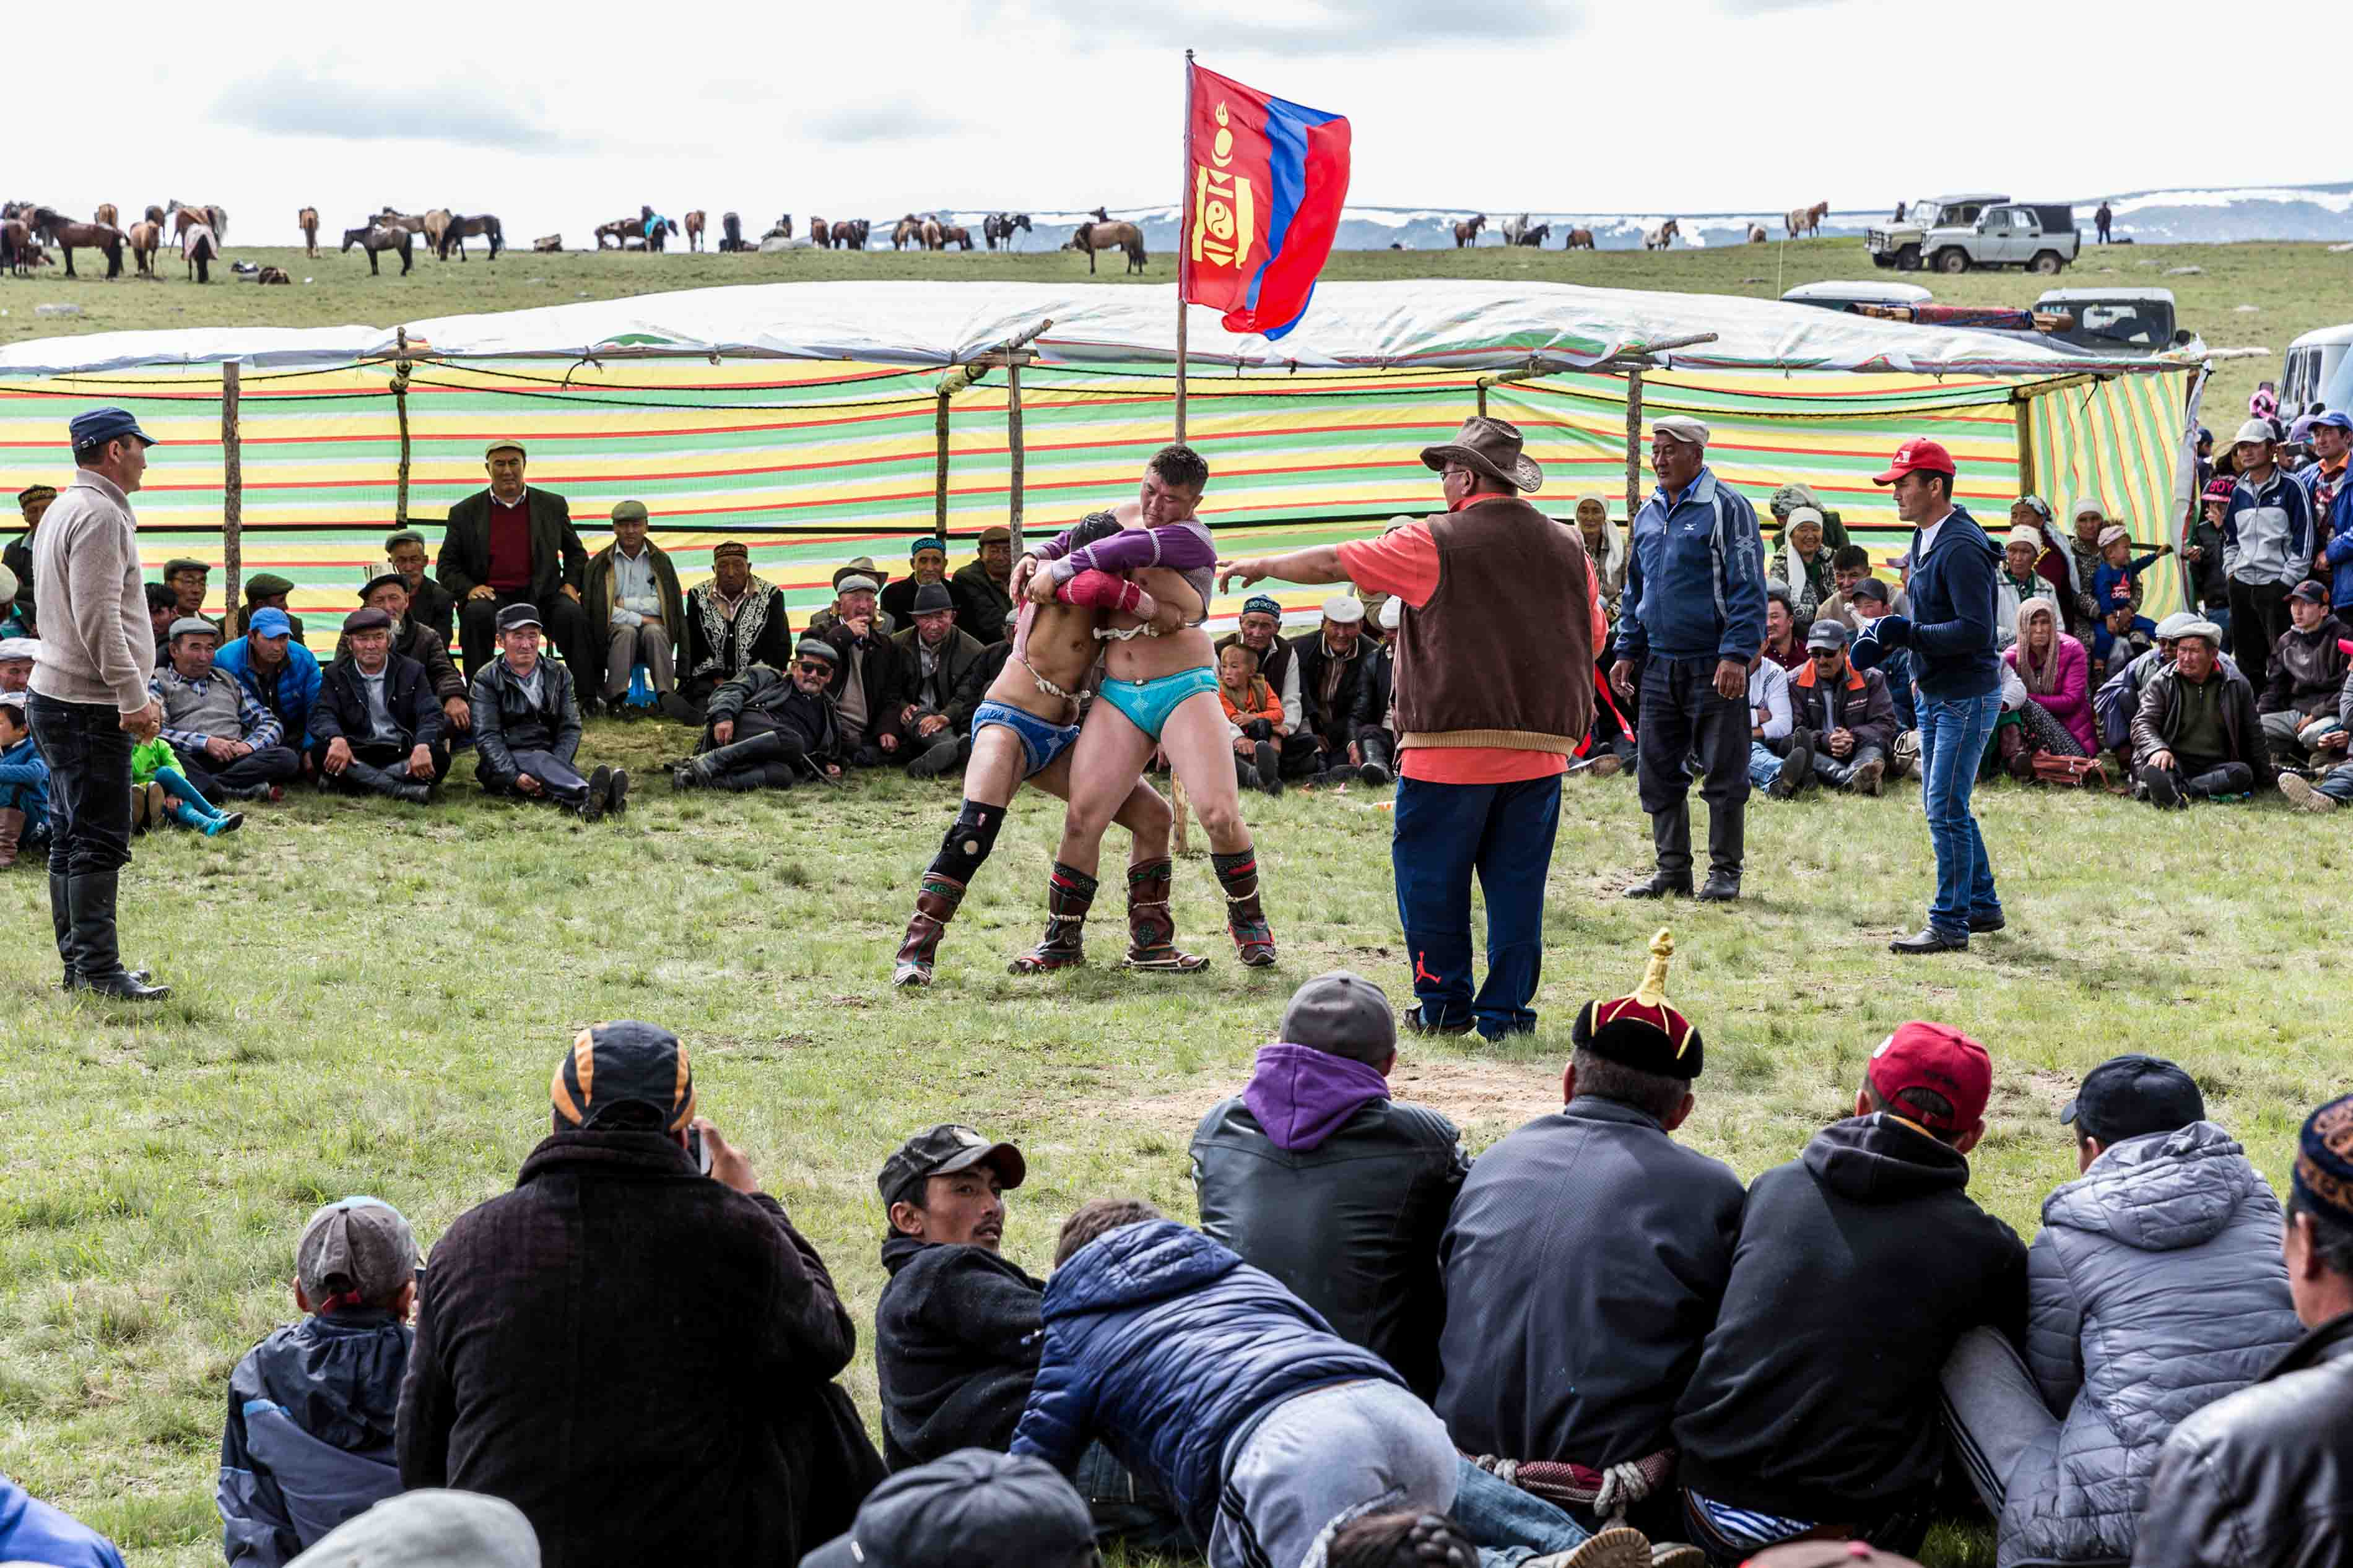 About the humiliation of women in Mongolia